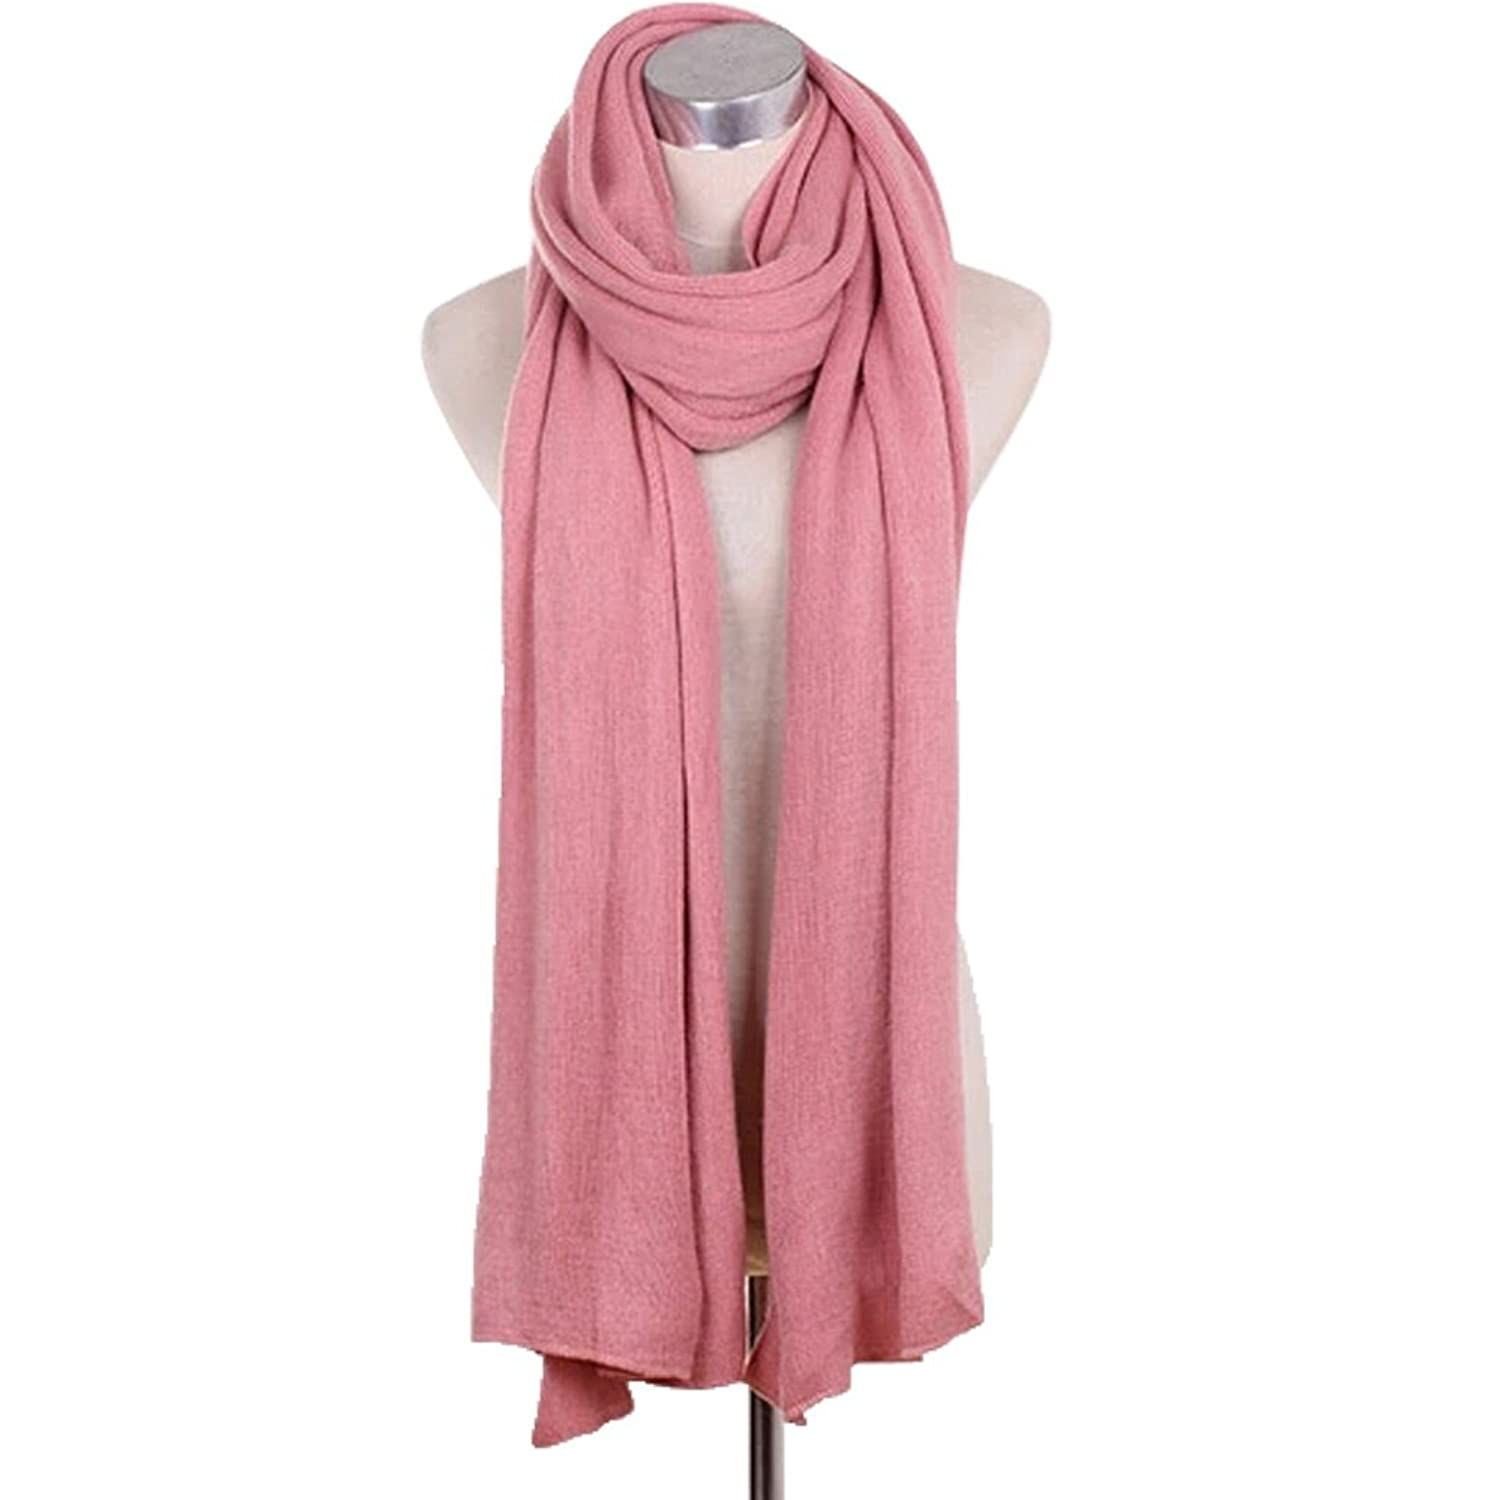 Lady's Stylish Pure Colour Scarves Luxurious Pashmina Scarf Knitted scarf Pink